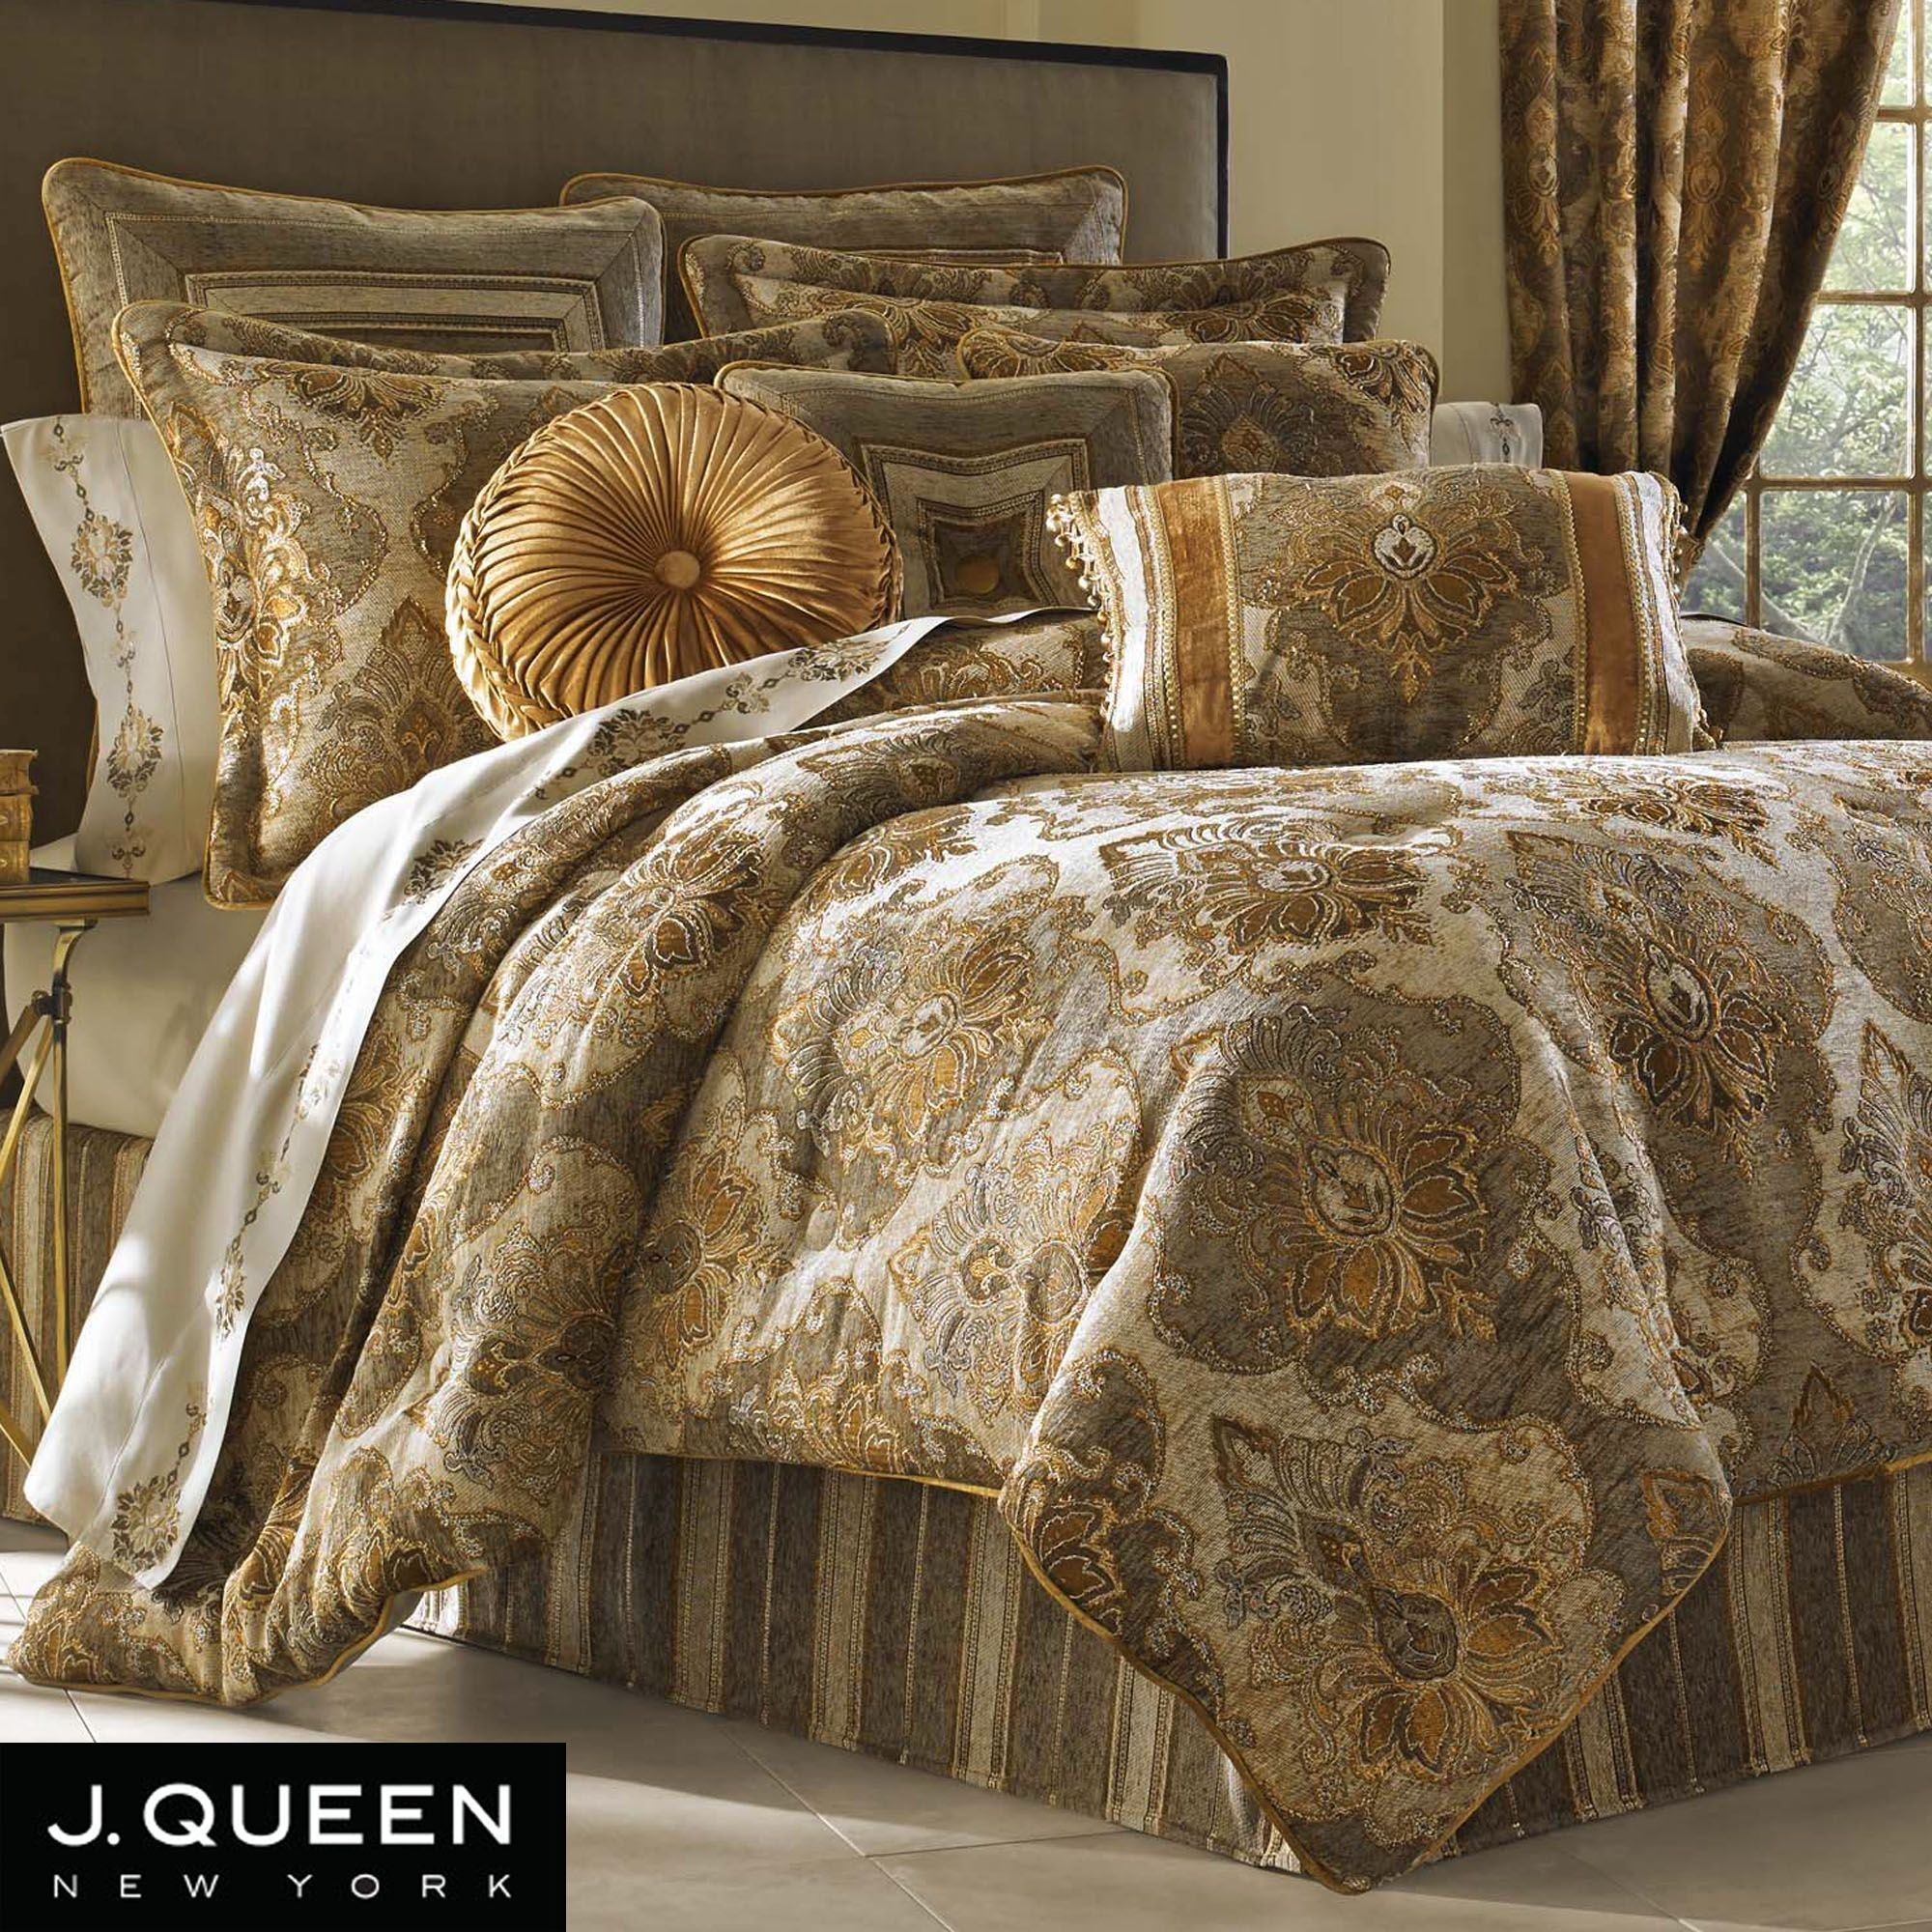 Queen Bedroom Sets Clearance